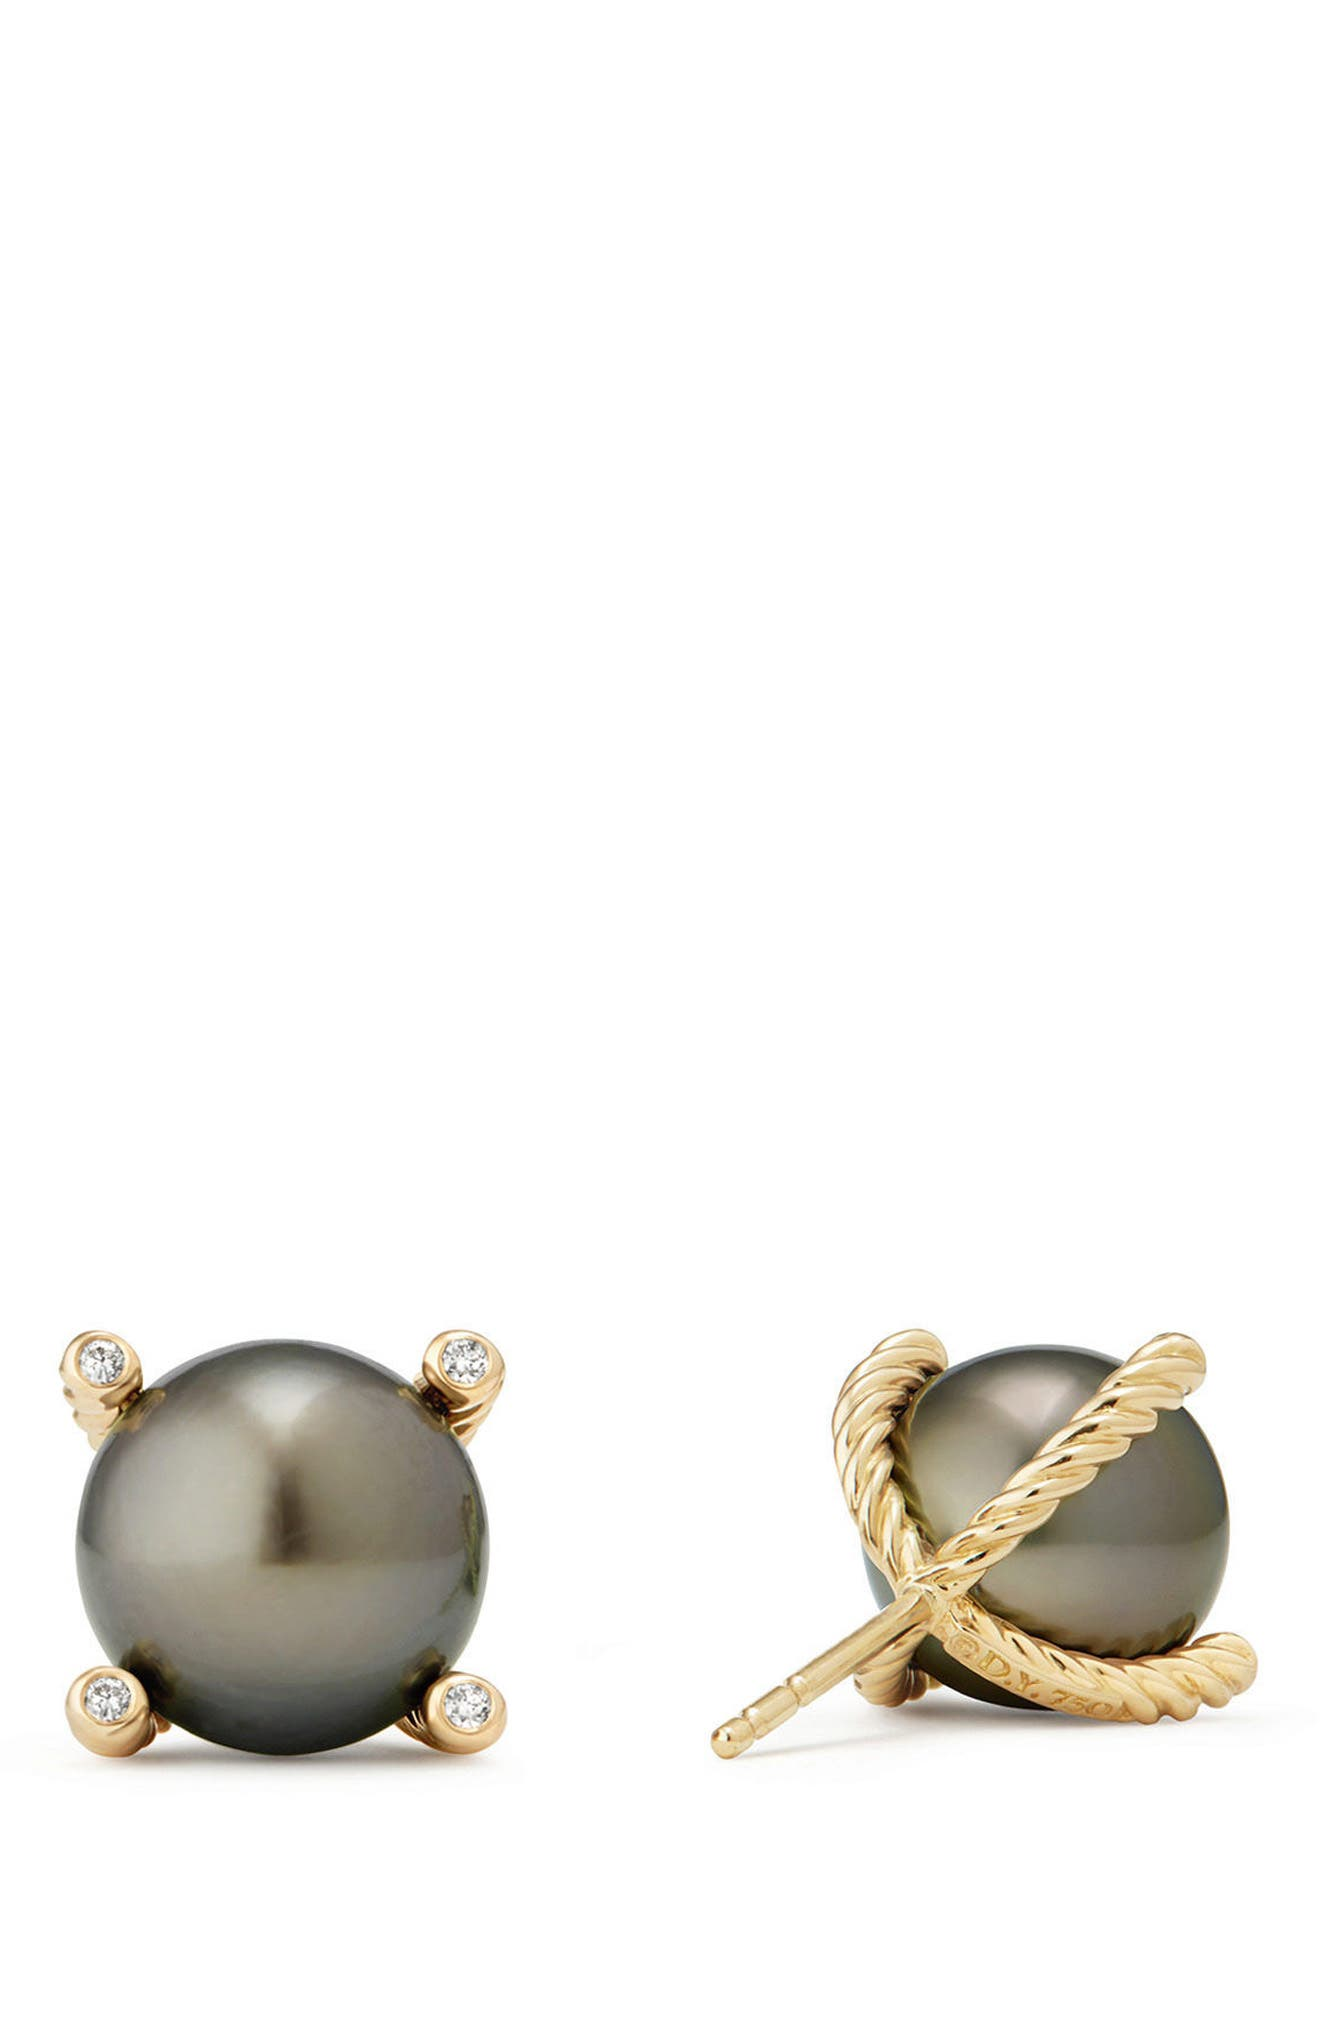 Genuine Pearl Earrings with Diamonds in 18K Gold,                             Alternate thumbnail 3, color,                             GOLD/ TAHITIAN GREY PEARL